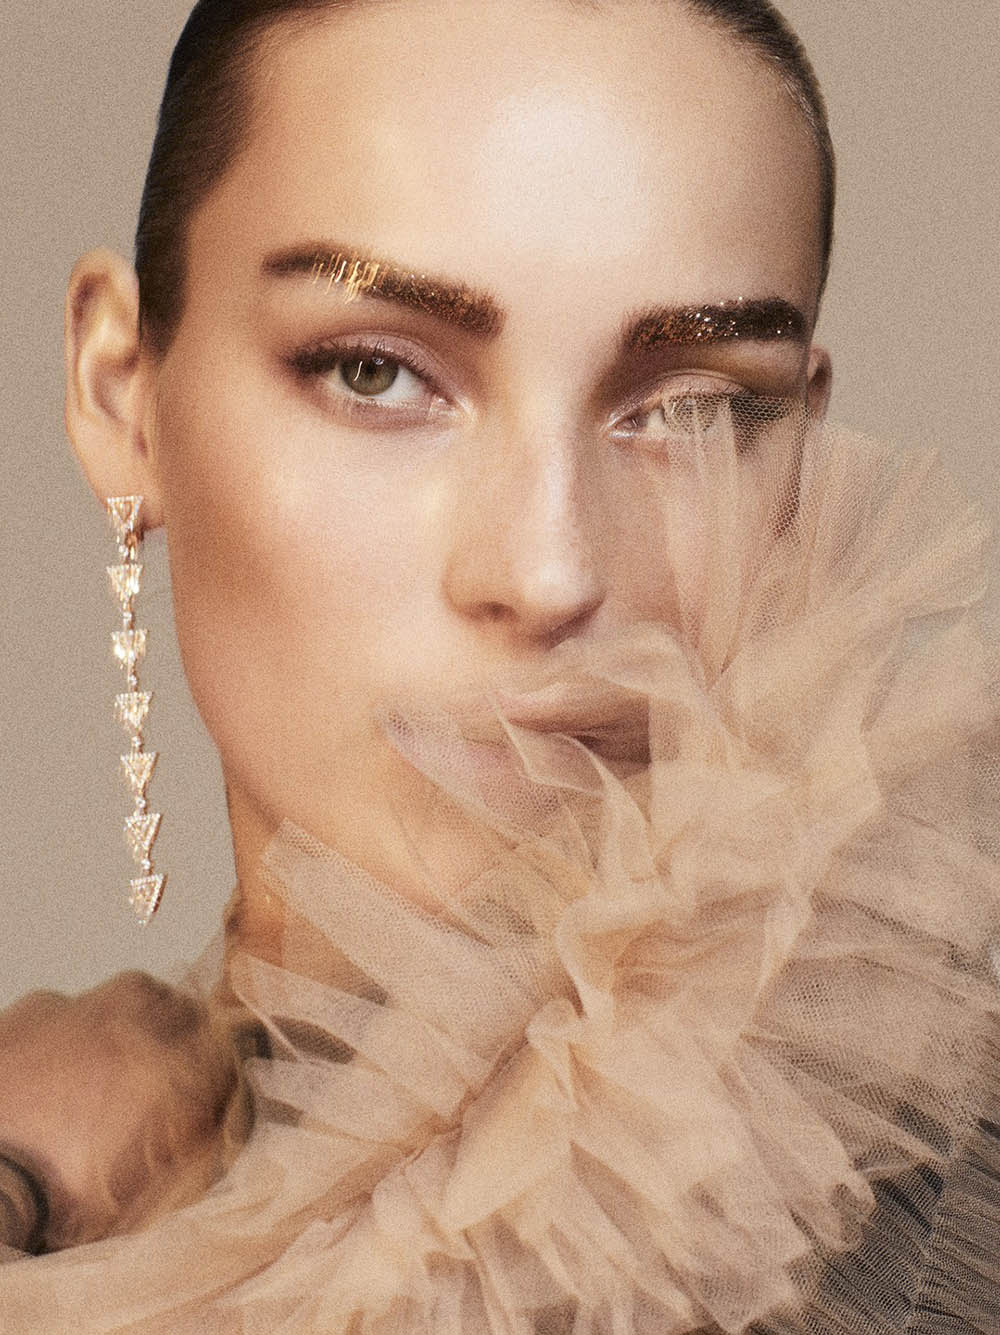 Julia Bergshoeff by Alvaro Beamud for Vogue Spain December 2018